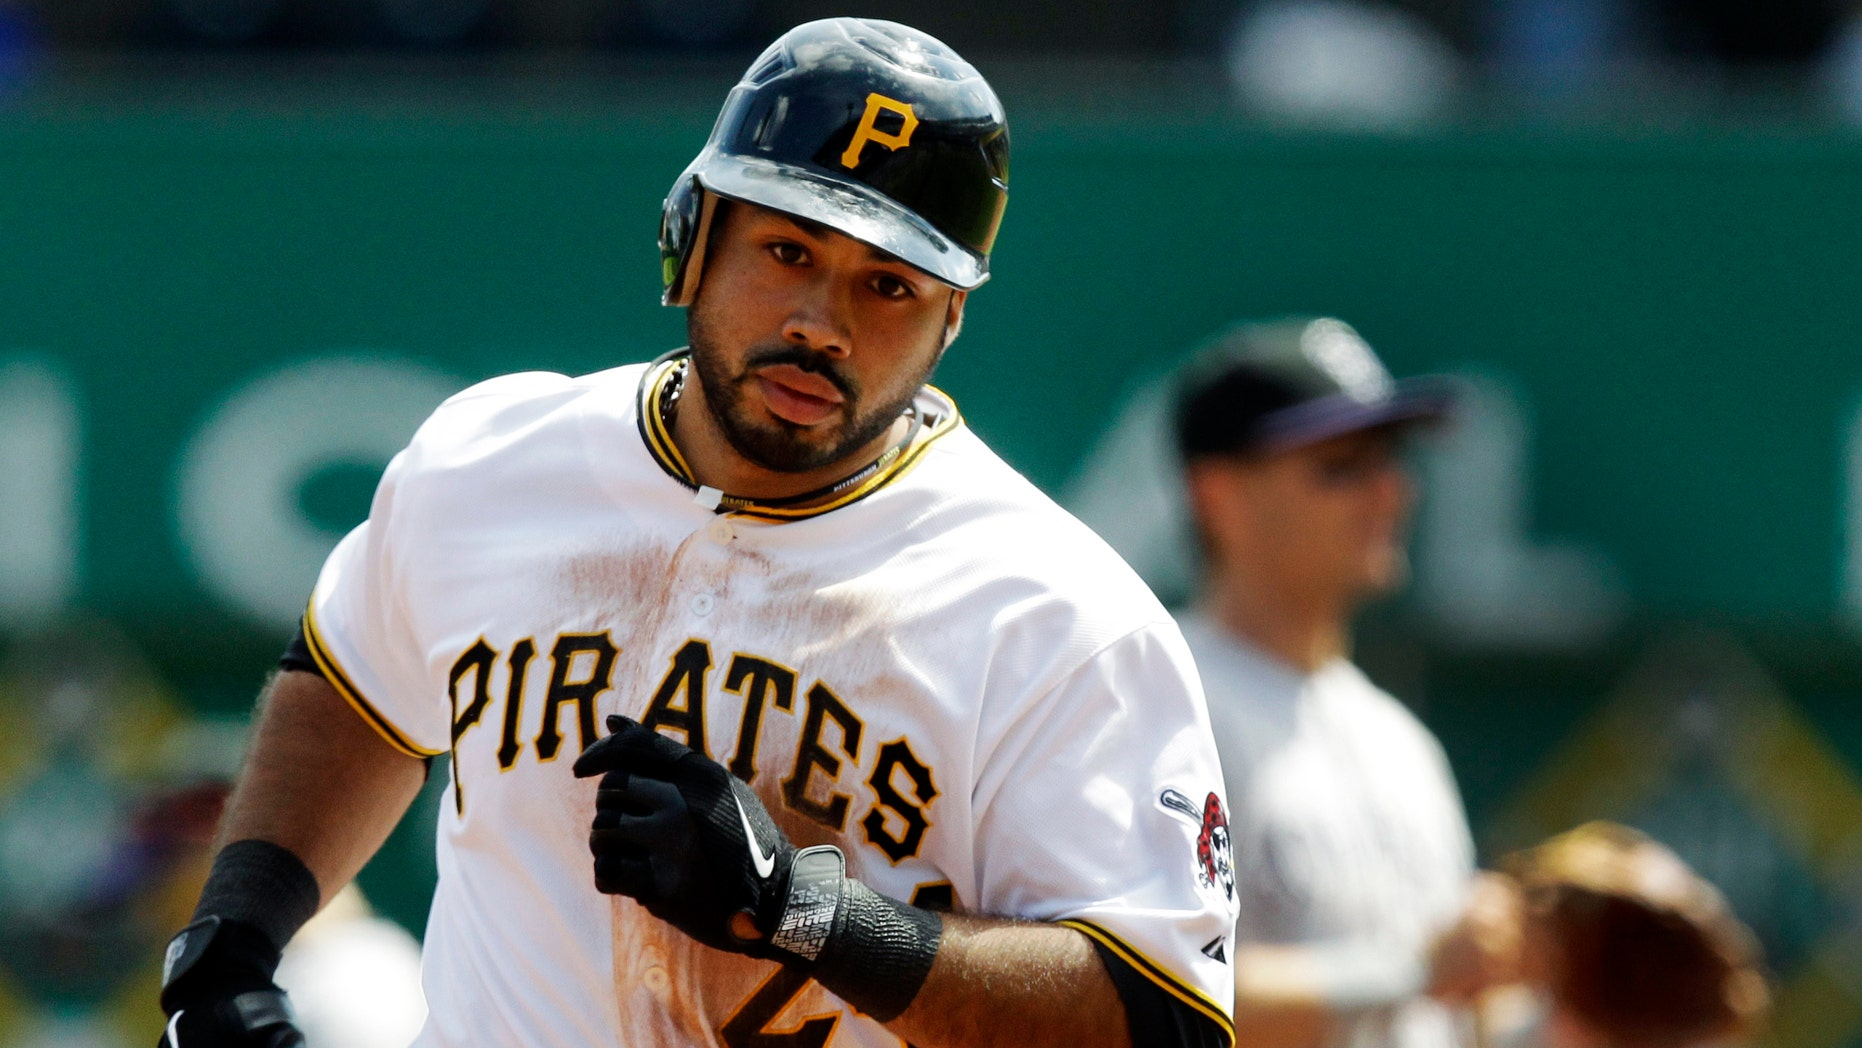 Pittsburgh Pirates' Pedro Alvarez rounds third after hitting a solo-home run off Colorado Rockies pitcher Juan Nicasio in the seventh inning of a baseball game in Pittsburgh, Wednesday, April 25, 2012. The Rockies won the first game of a double header 2-1. (AP Photo/Gene J. Puskar)